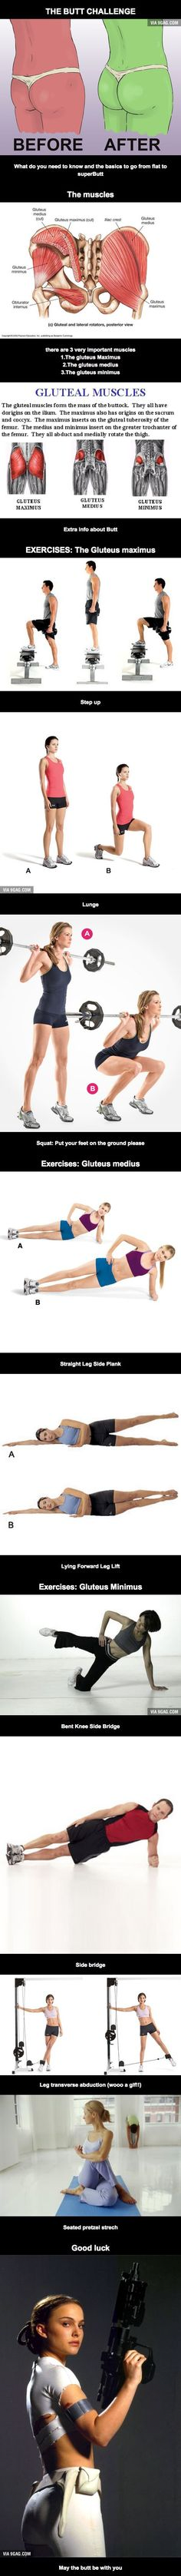 Whittle your middle with our Ripped Abs Circuit. #fitness | 2 FOR 50% OFF COUPON AT GNC | mahalabailey.weeb...